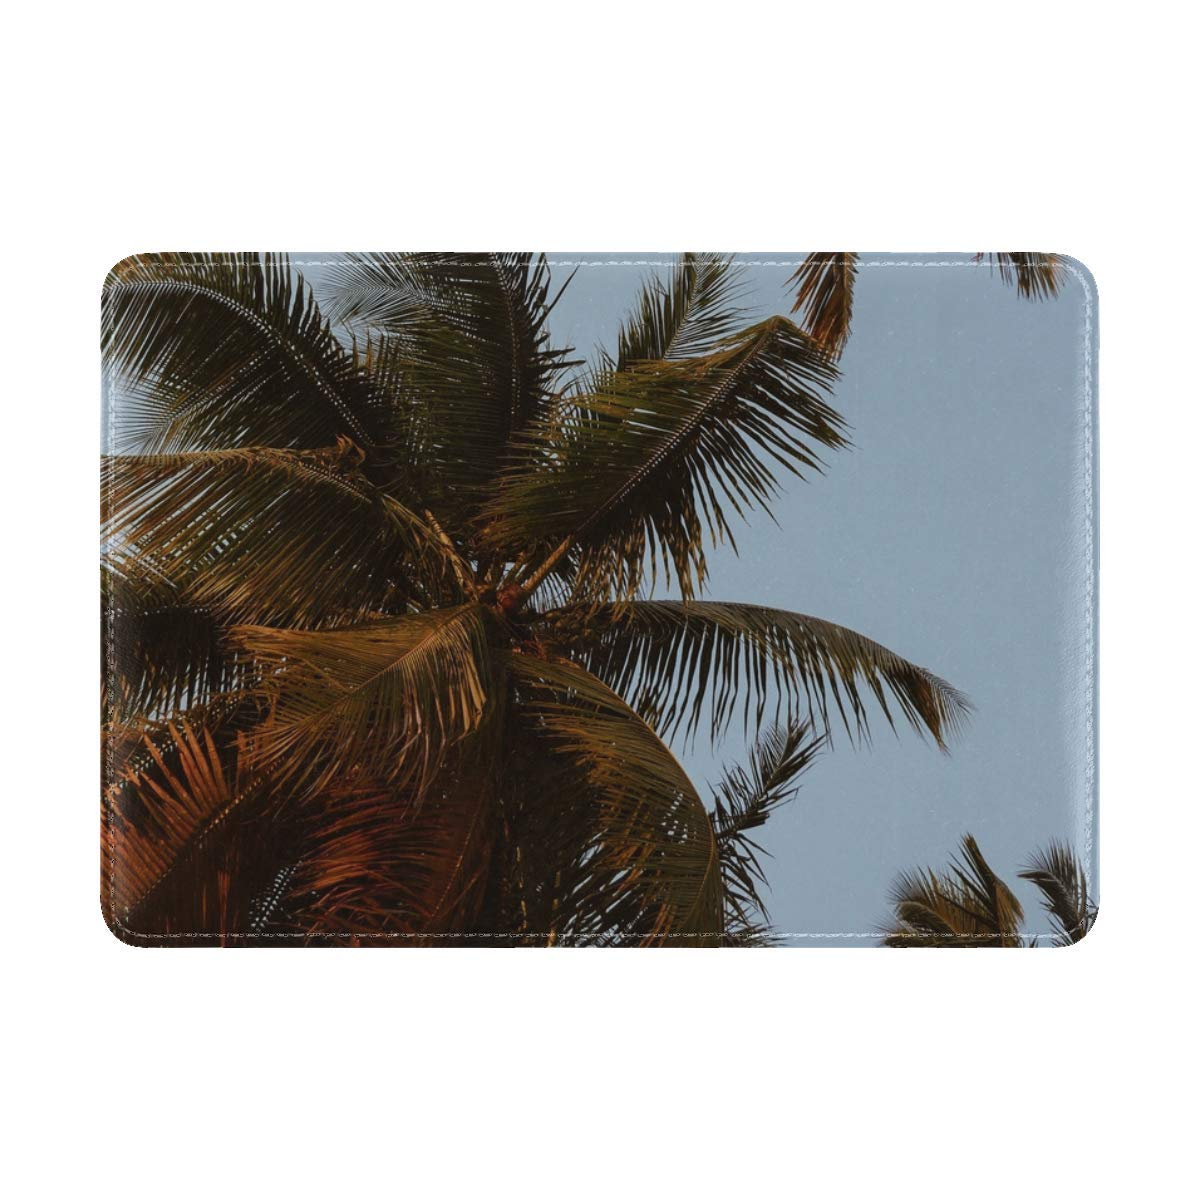 Palm Trees Crowns Branches Leather Passport Holder Cover Case Travel One Pocket